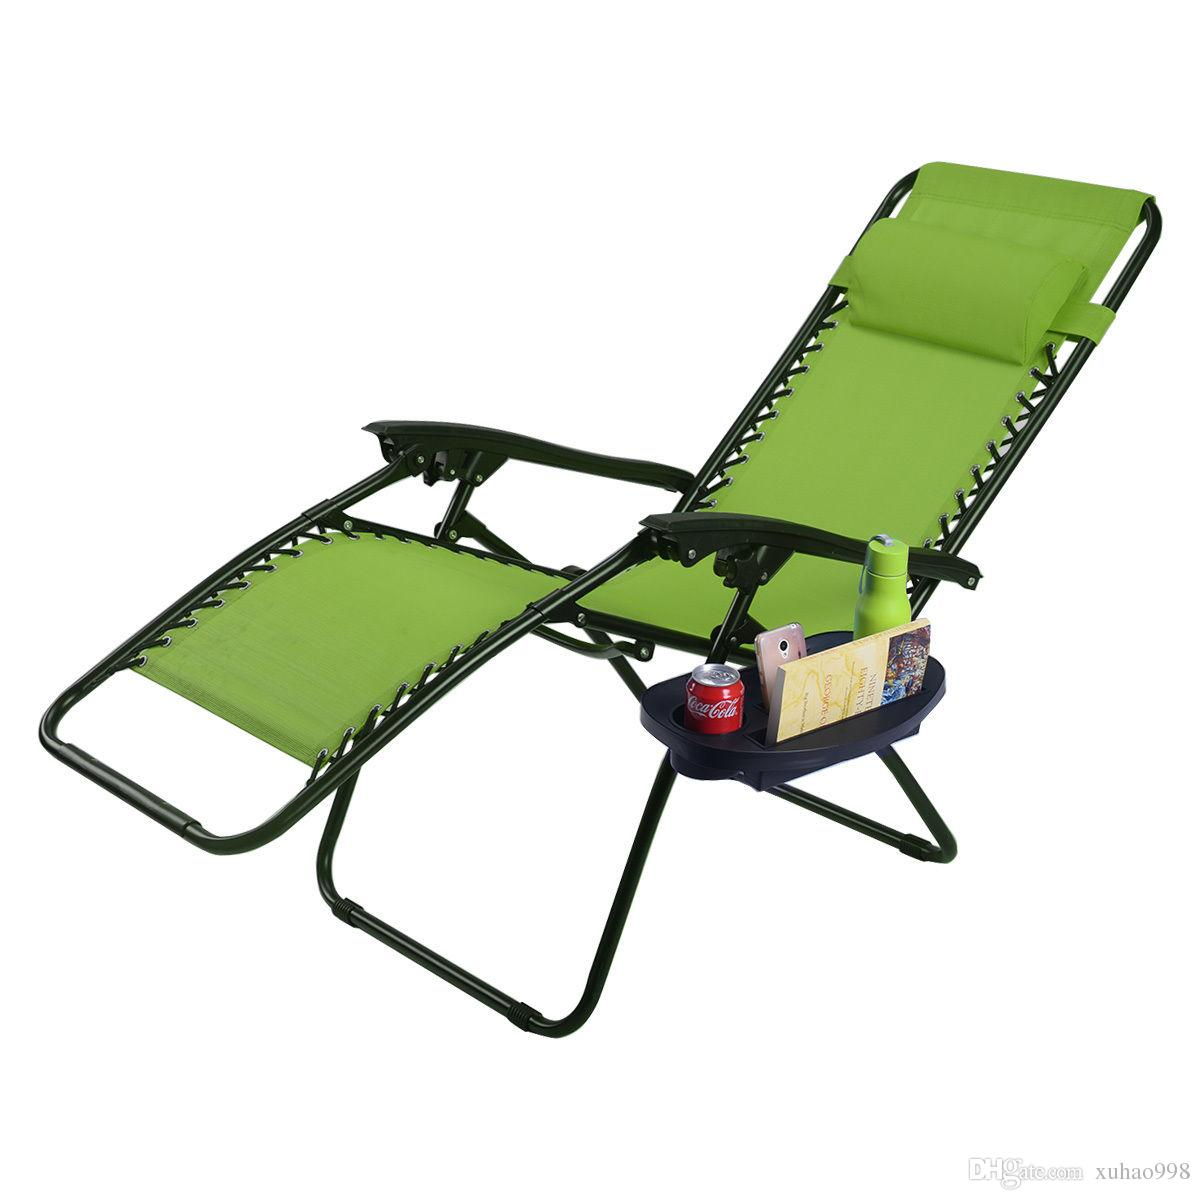 2017 Folding Zero Gravity Reclining Lounge Chairs Outdoor Beach Patio W/Utility Tray From Xuhao998 $33.17 | Dhgate.Com  sc 1 st  DHgate.com & 2017 Folding Zero Gravity Reclining Lounge Chairs Outdoor Beach ... islam-shia.org